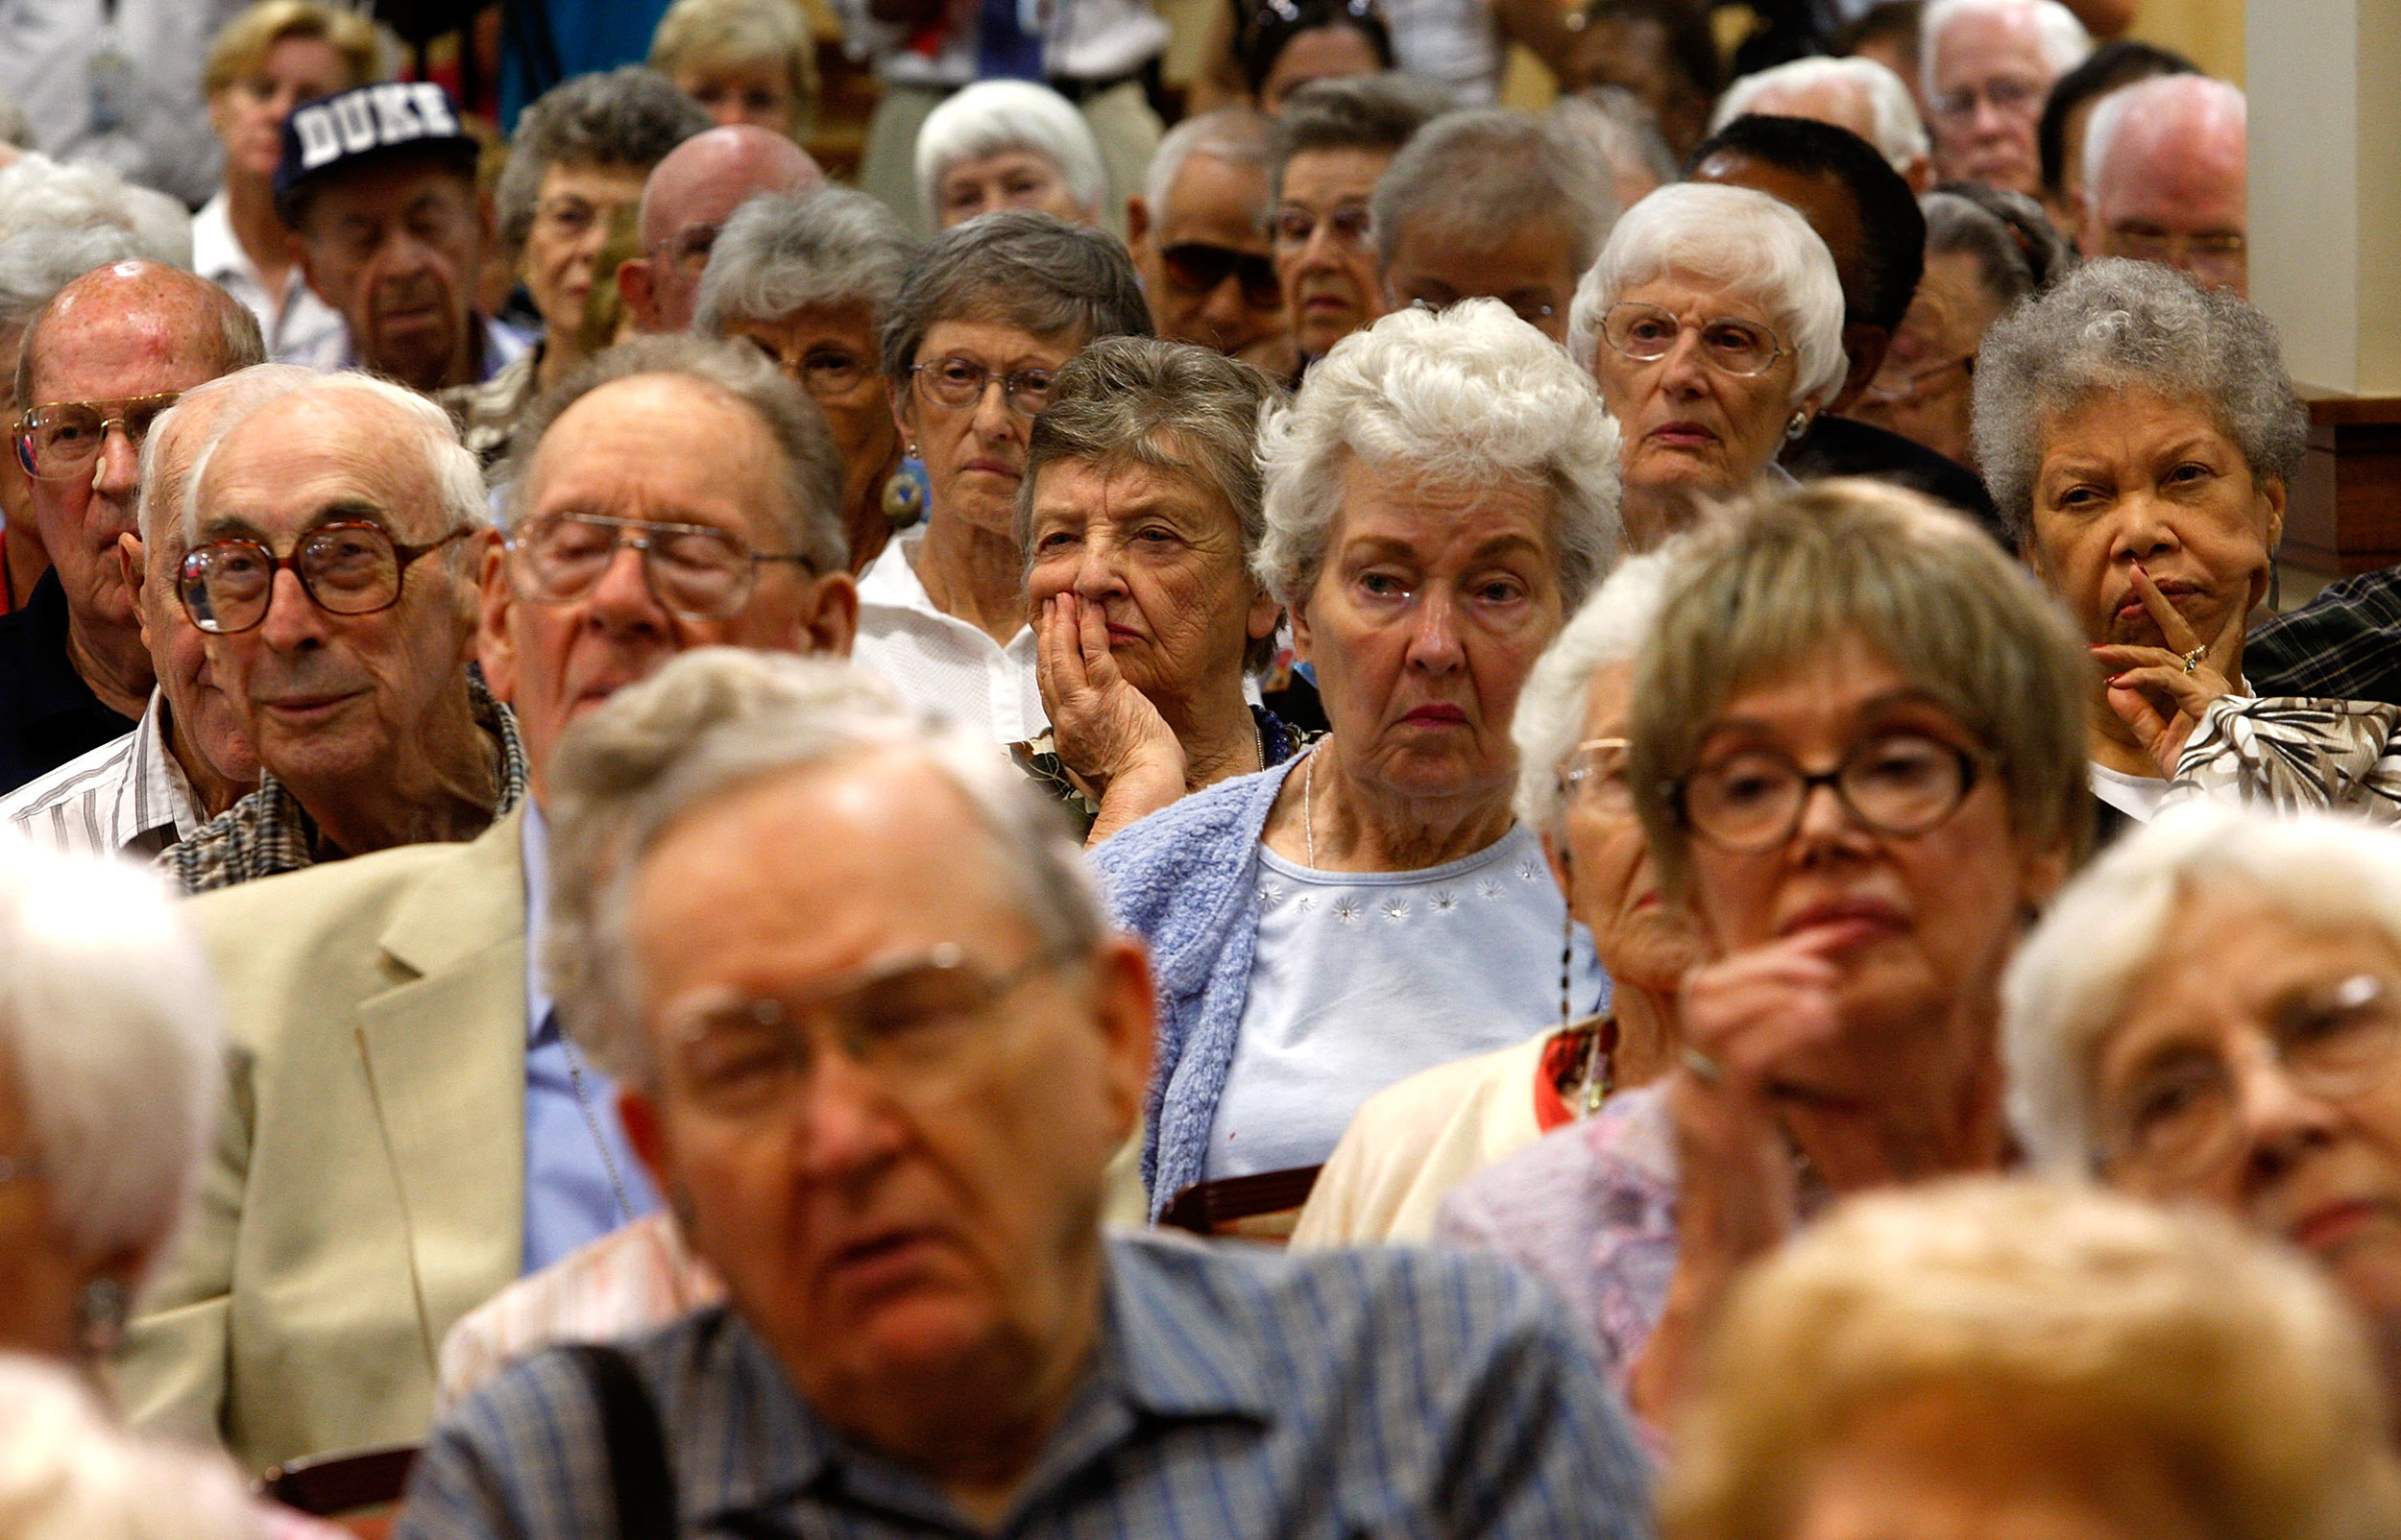 SPRINGFIELD, VA - AUGUST 25:  Residents listen during a health care forum at Greenspring Retirement Community August 25, 2009 in Springfield, Virginia. Congressional members from across the country have returned to their own district to listen to voters' opinions on healthcare reform.  (Photo by Alex Wong/Getty Images)